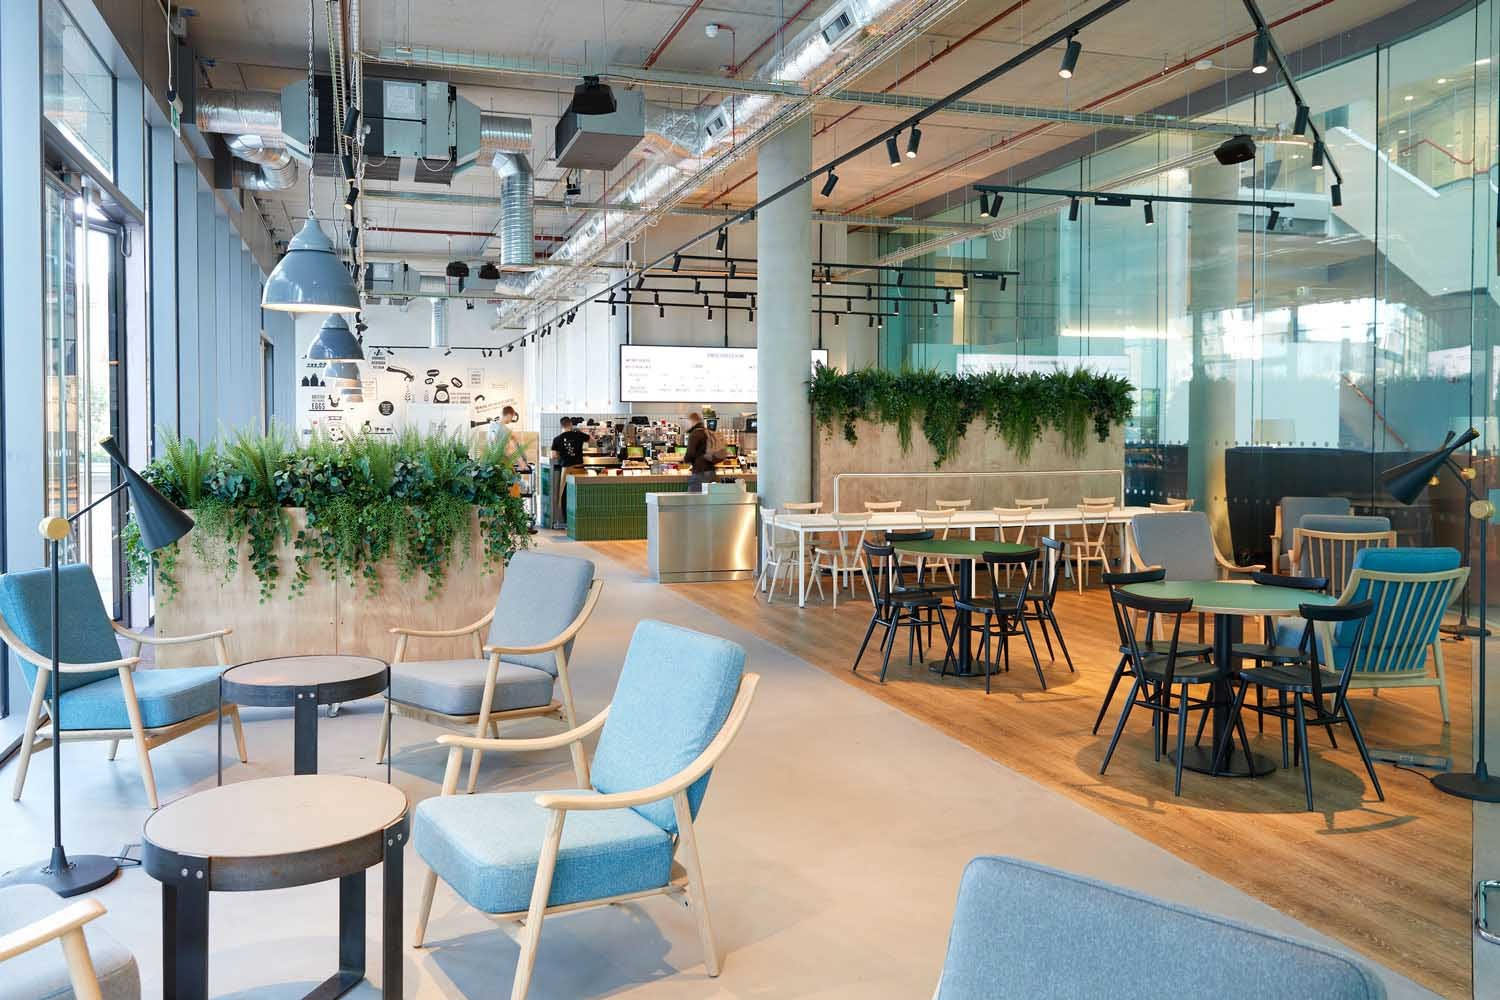 Thiết kế Co-working cafe